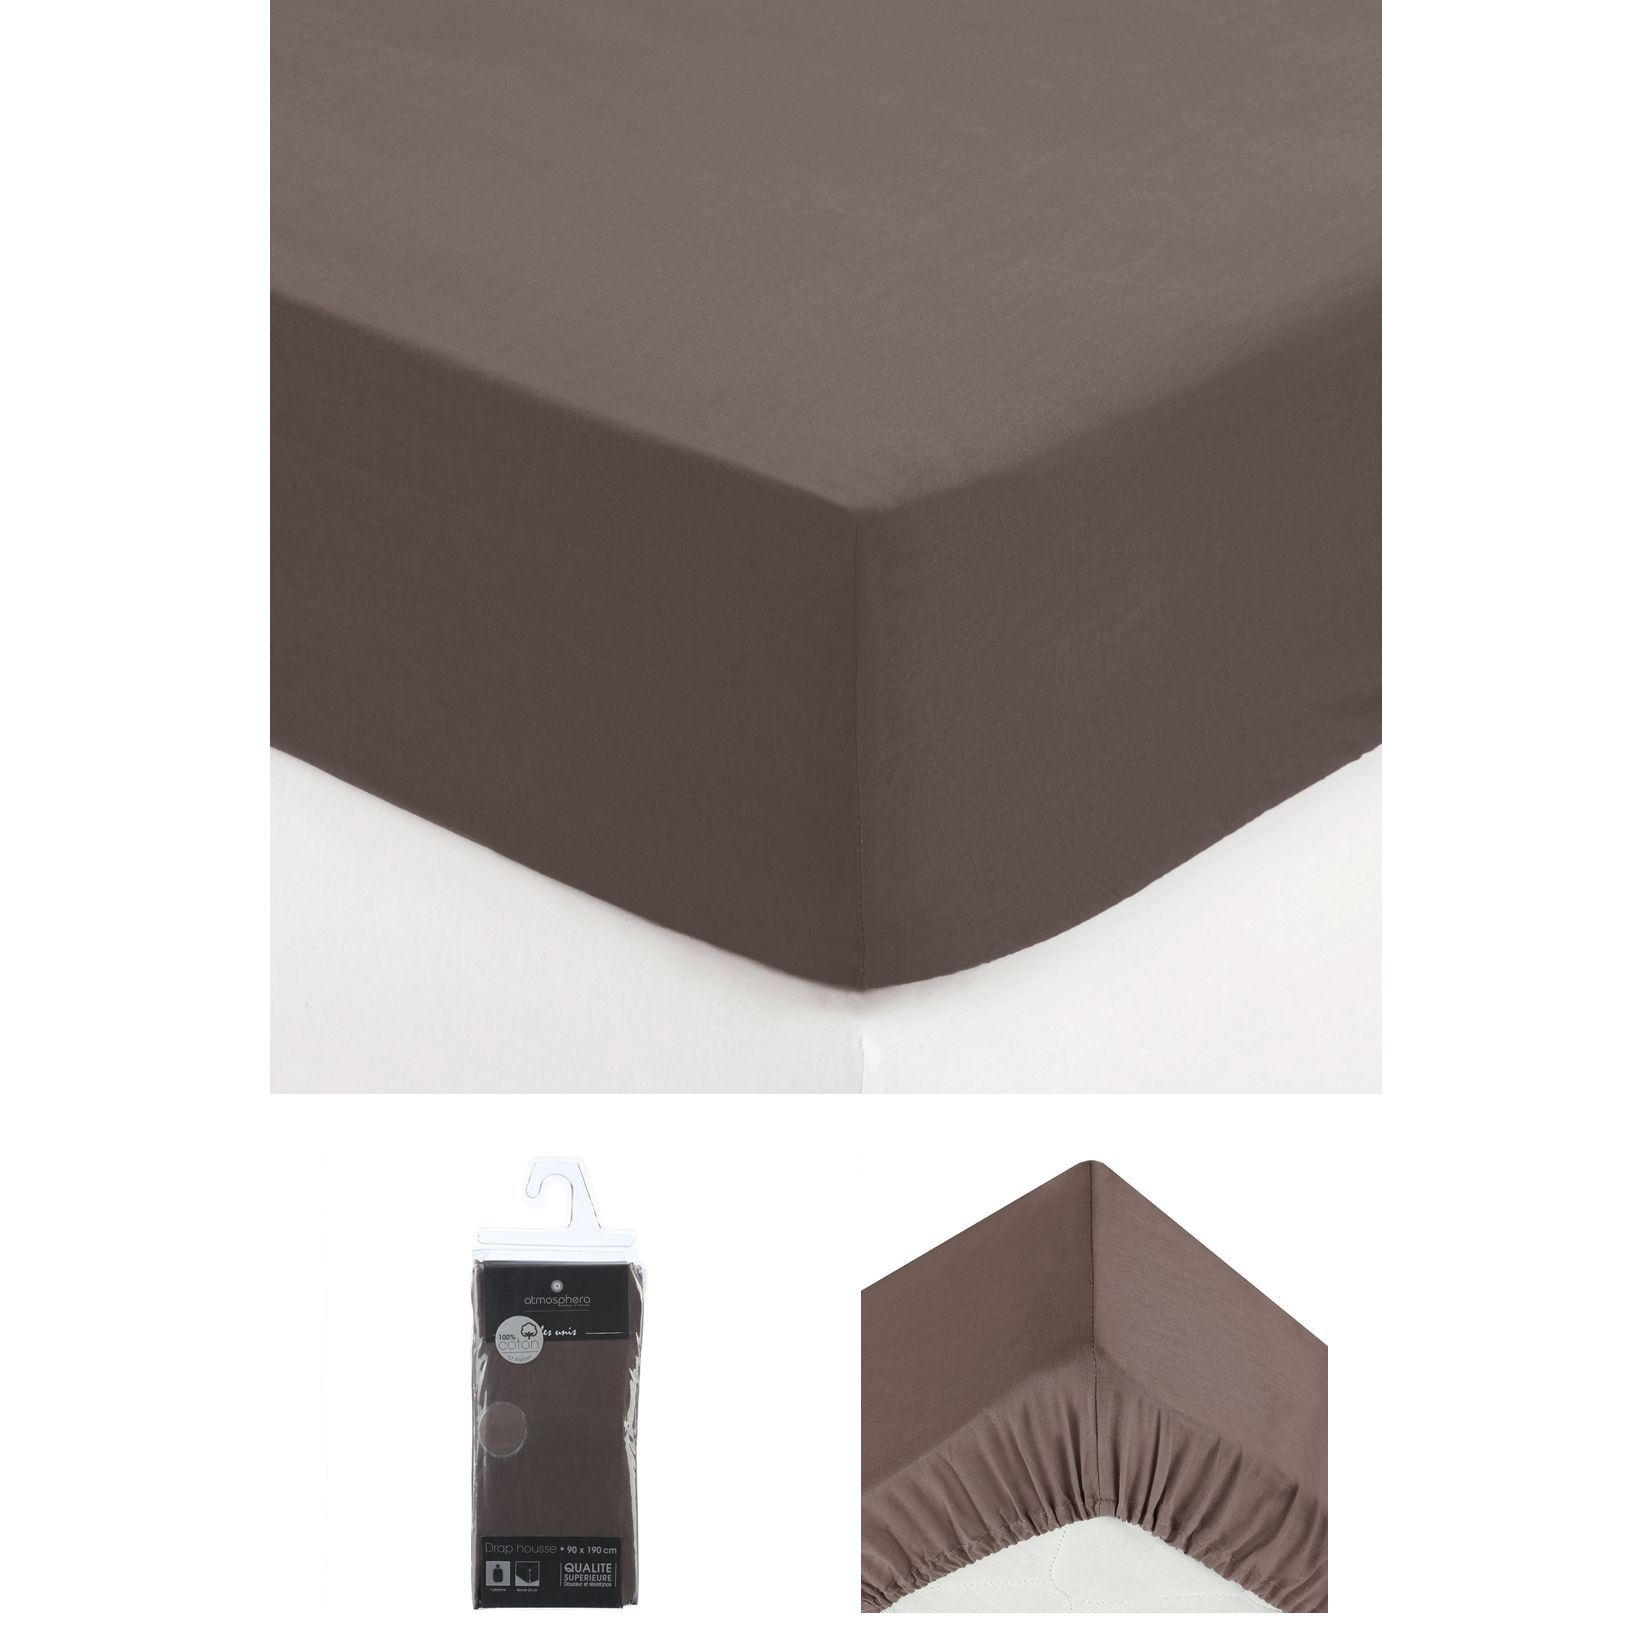 drap housse 2 personnes 140x190 cm 100 coton chocolat maison fut e. Black Bedroom Furniture Sets. Home Design Ideas